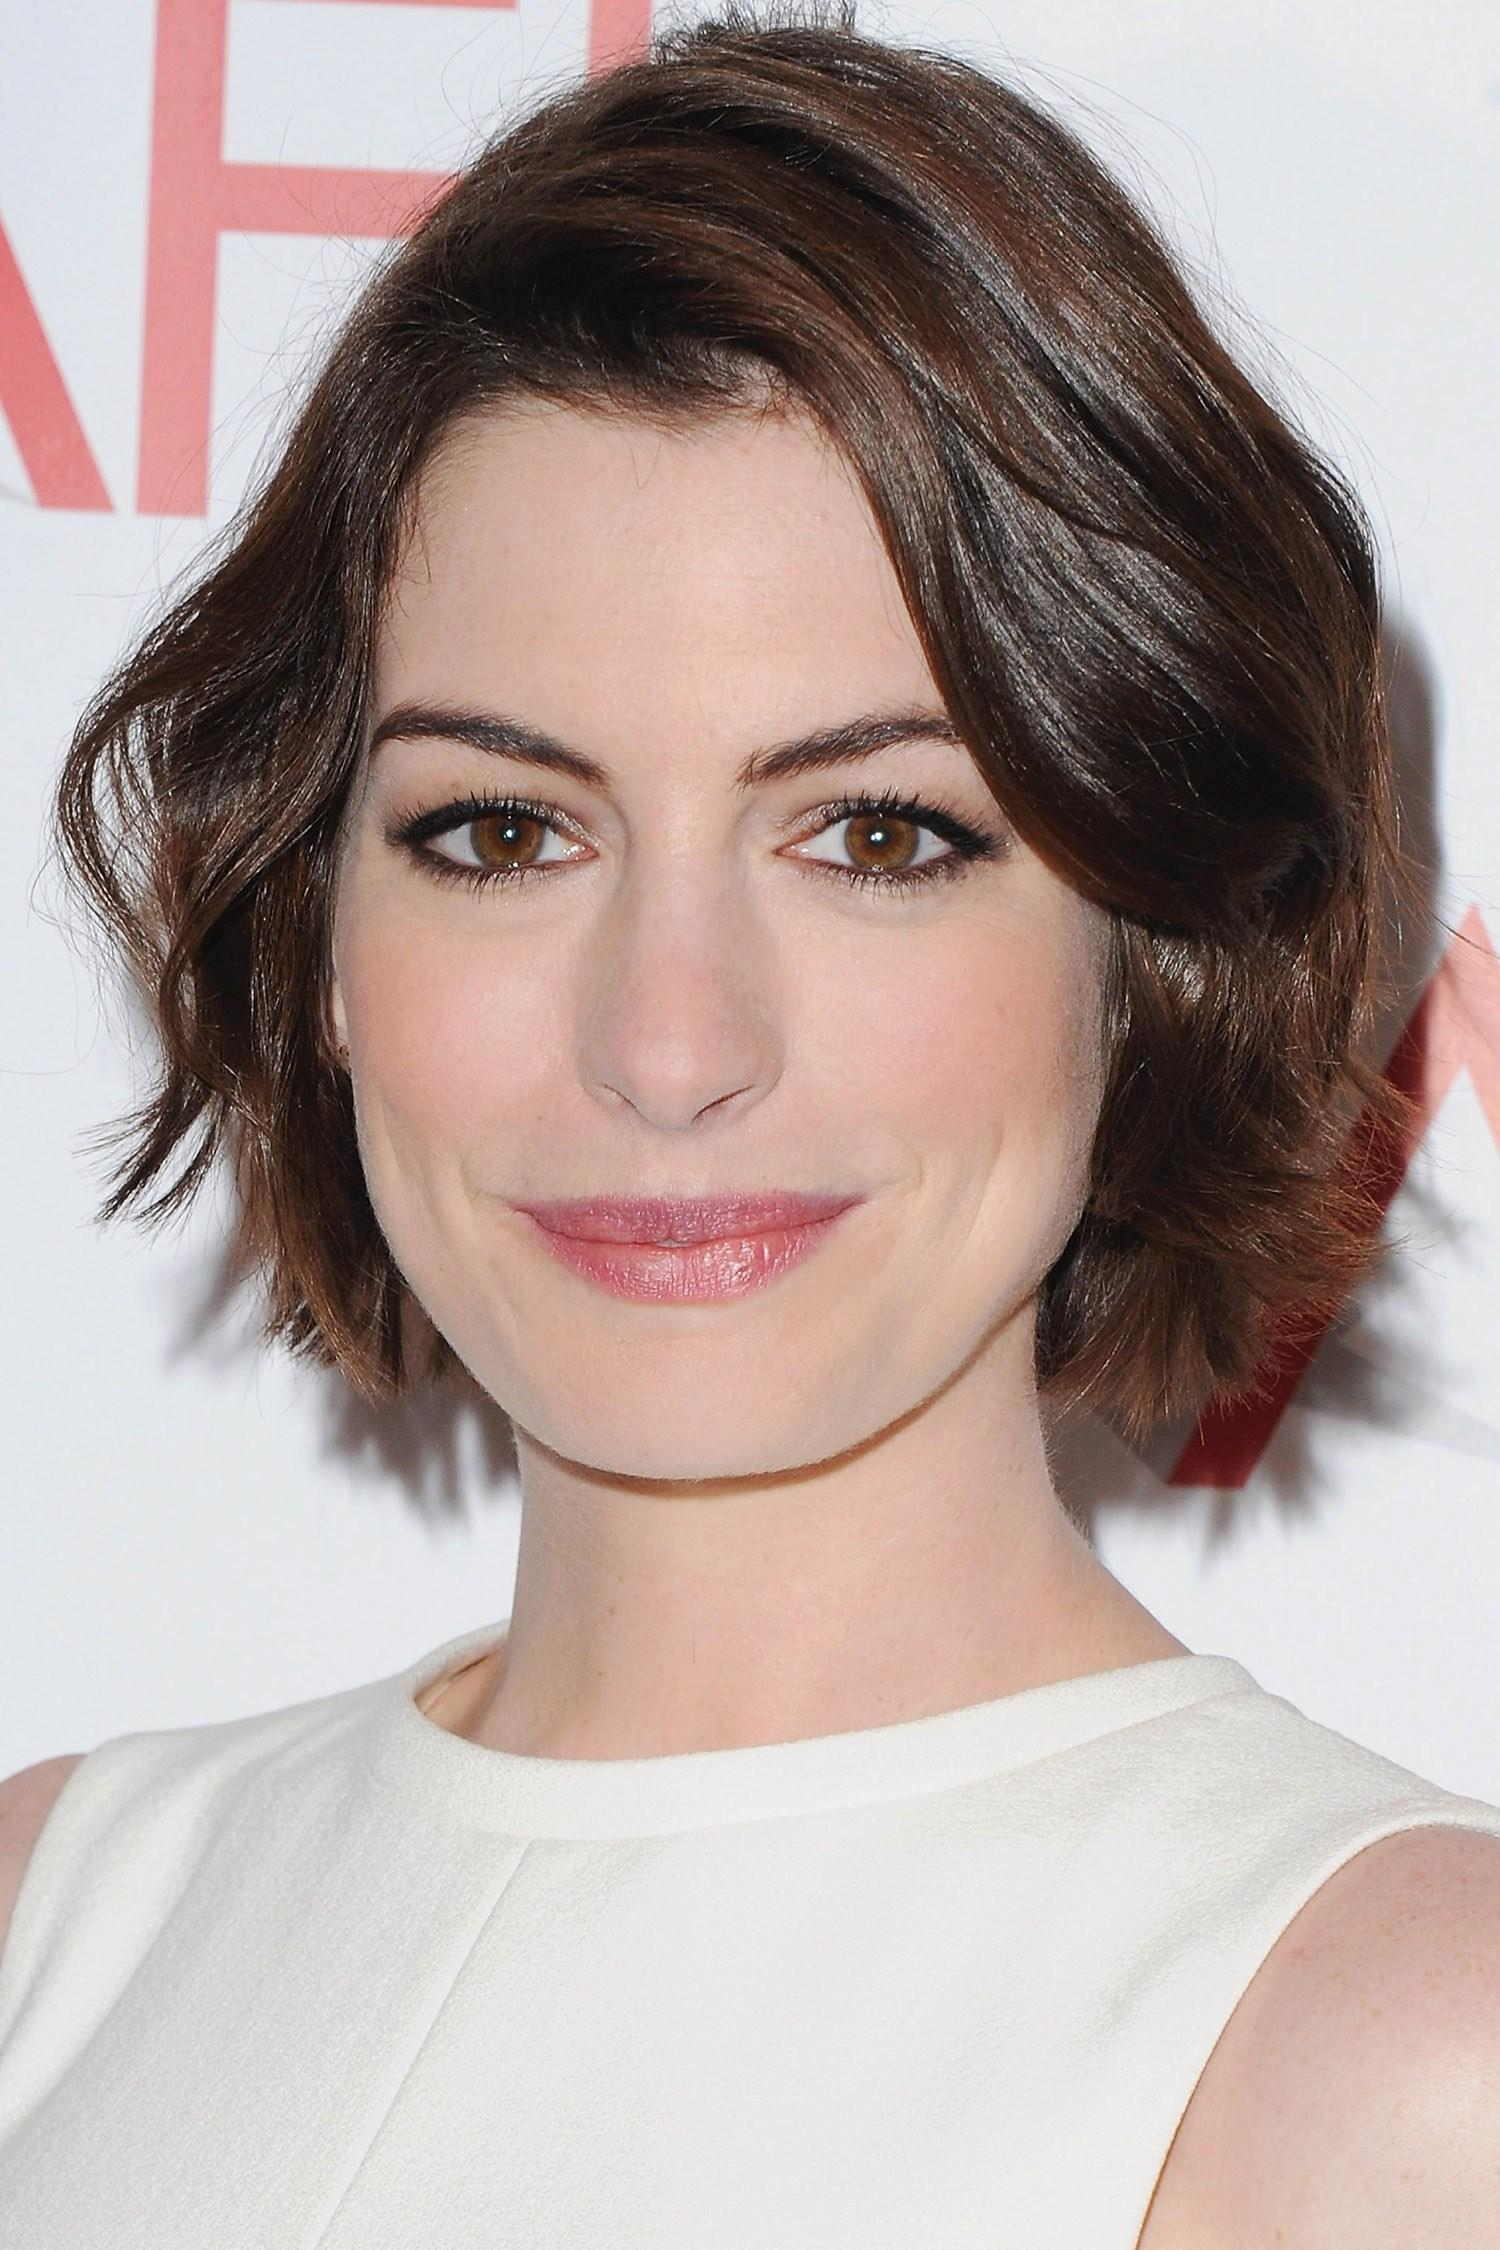 The Best 10 Short Hairstyles And Haircuts For 2016 How To Style Short Hair Pictures